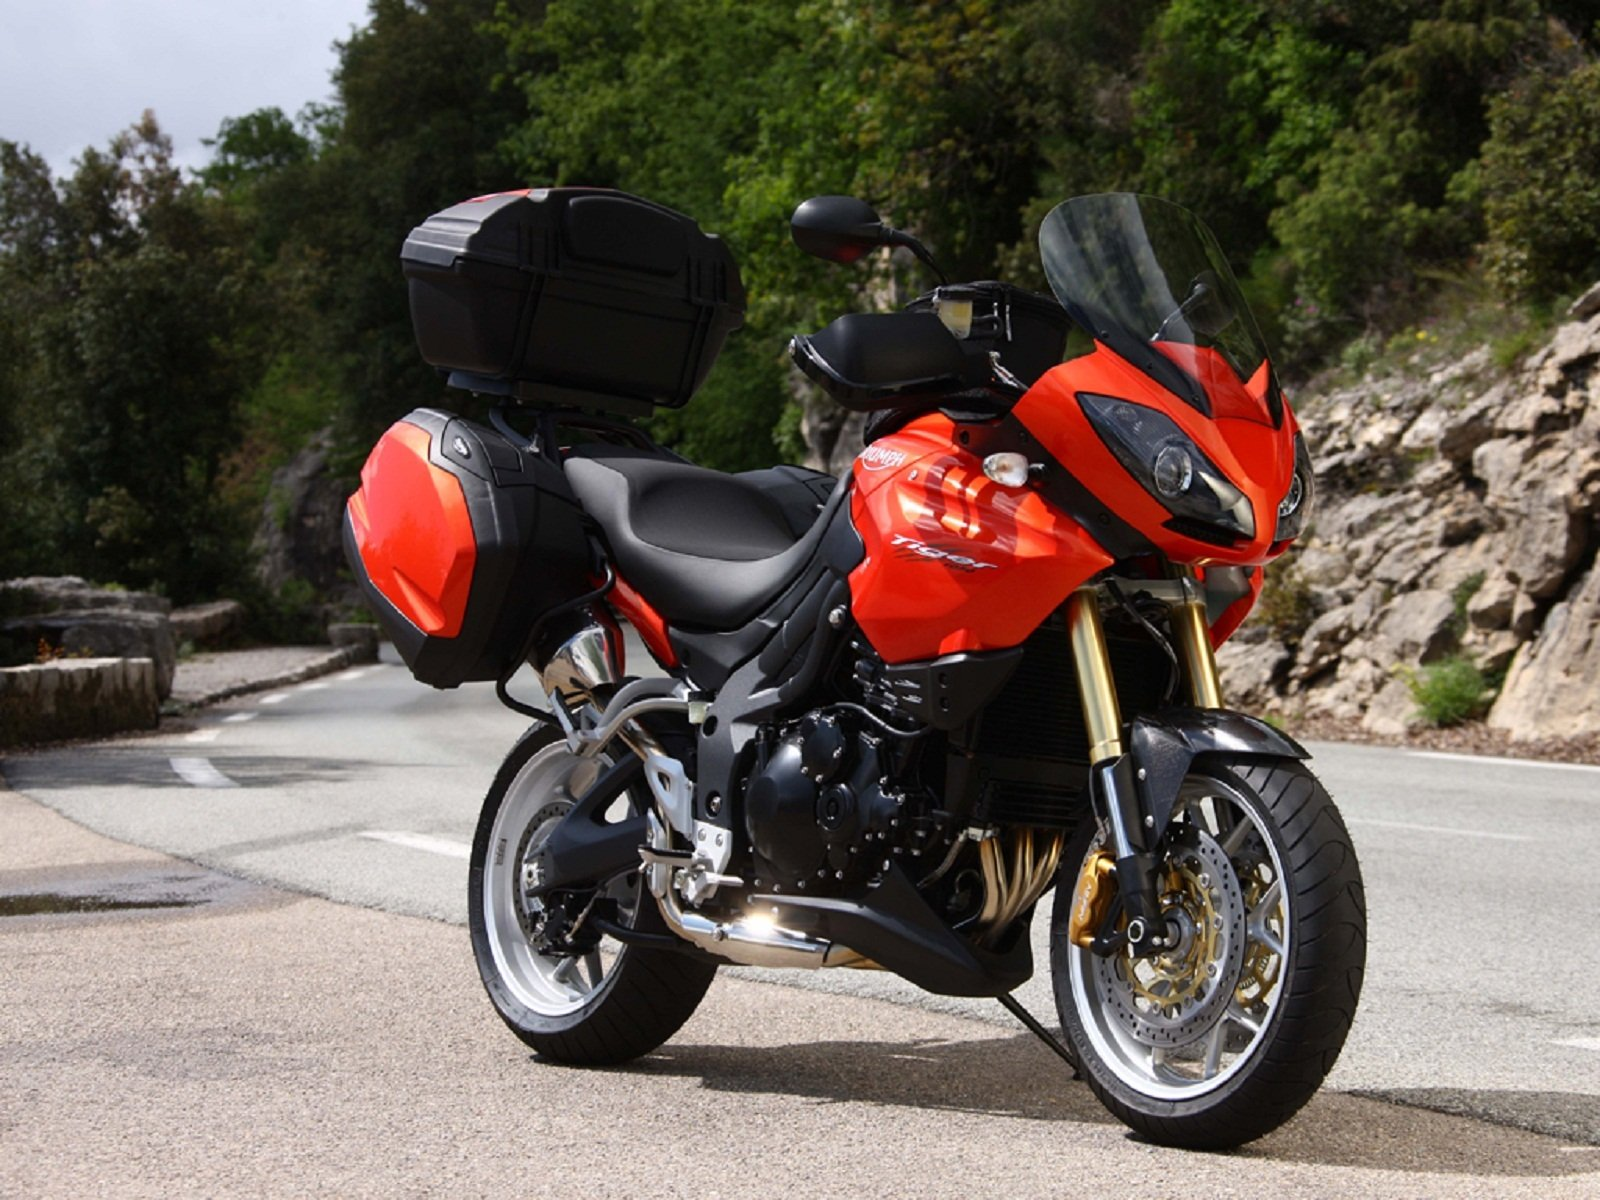 2012 triumph tiger 1050 picture 434894 motorcycle. Black Bedroom Furniture Sets. Home Design Ideas